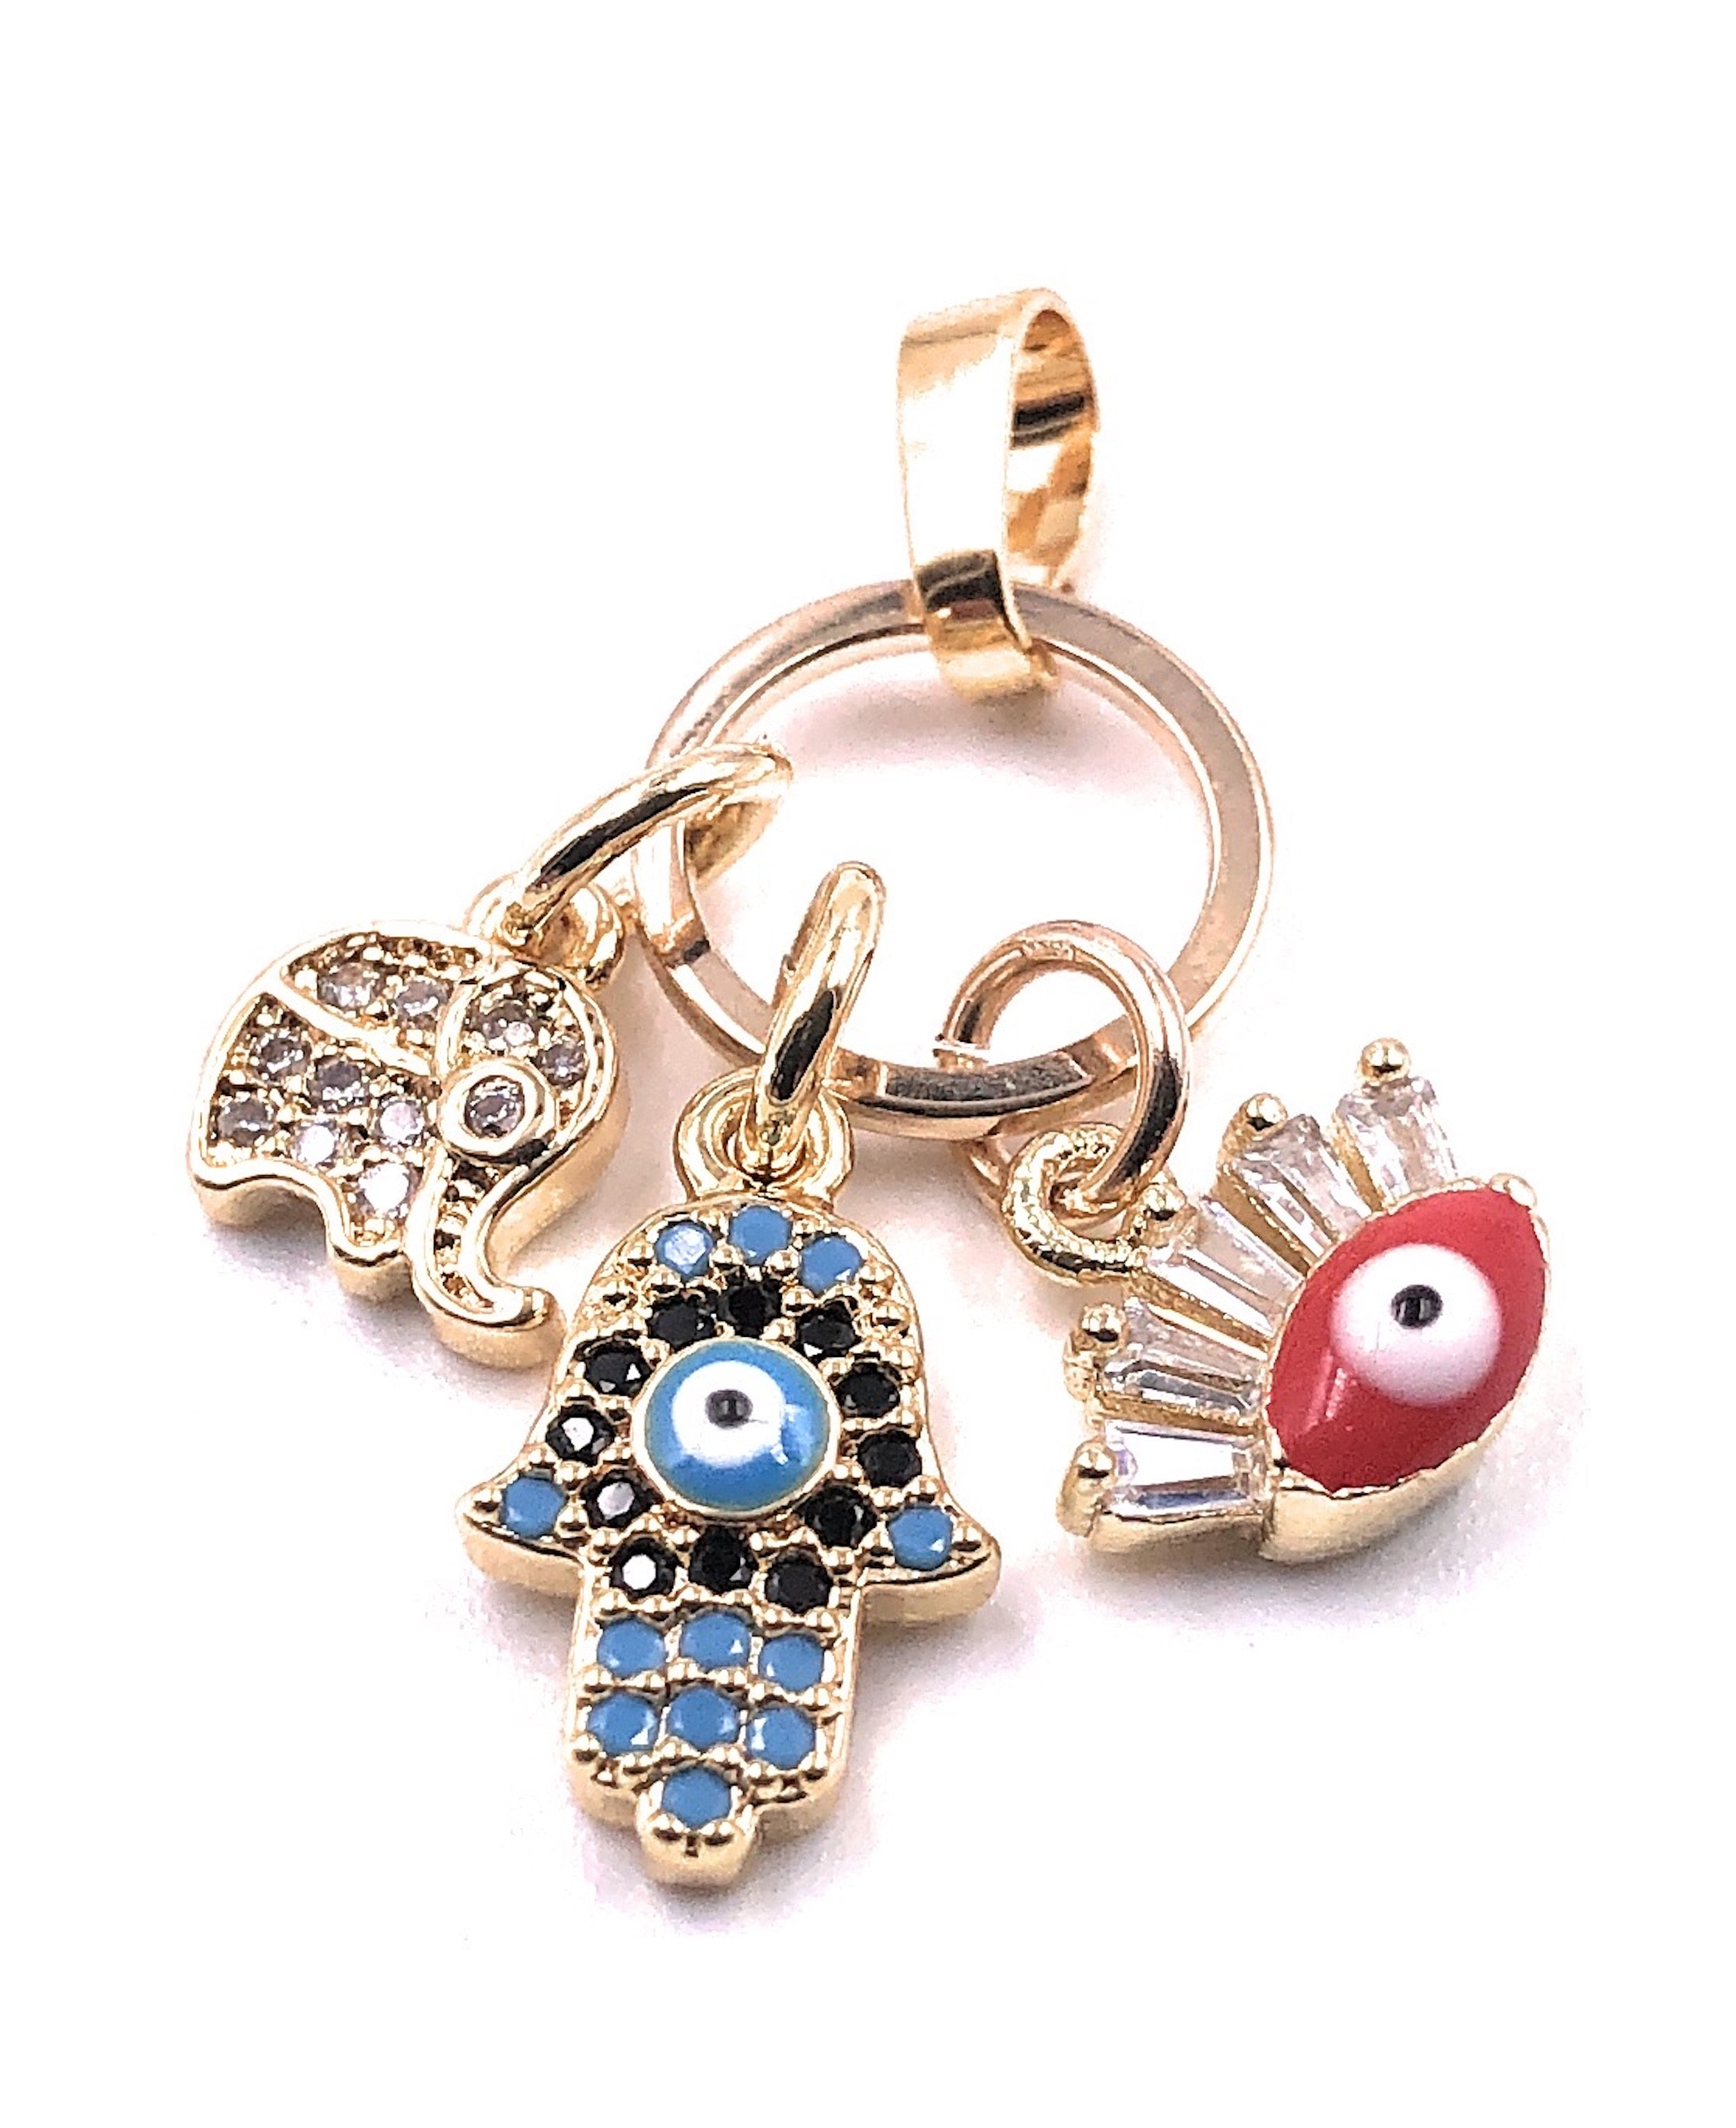 Protection Jewelry for Women